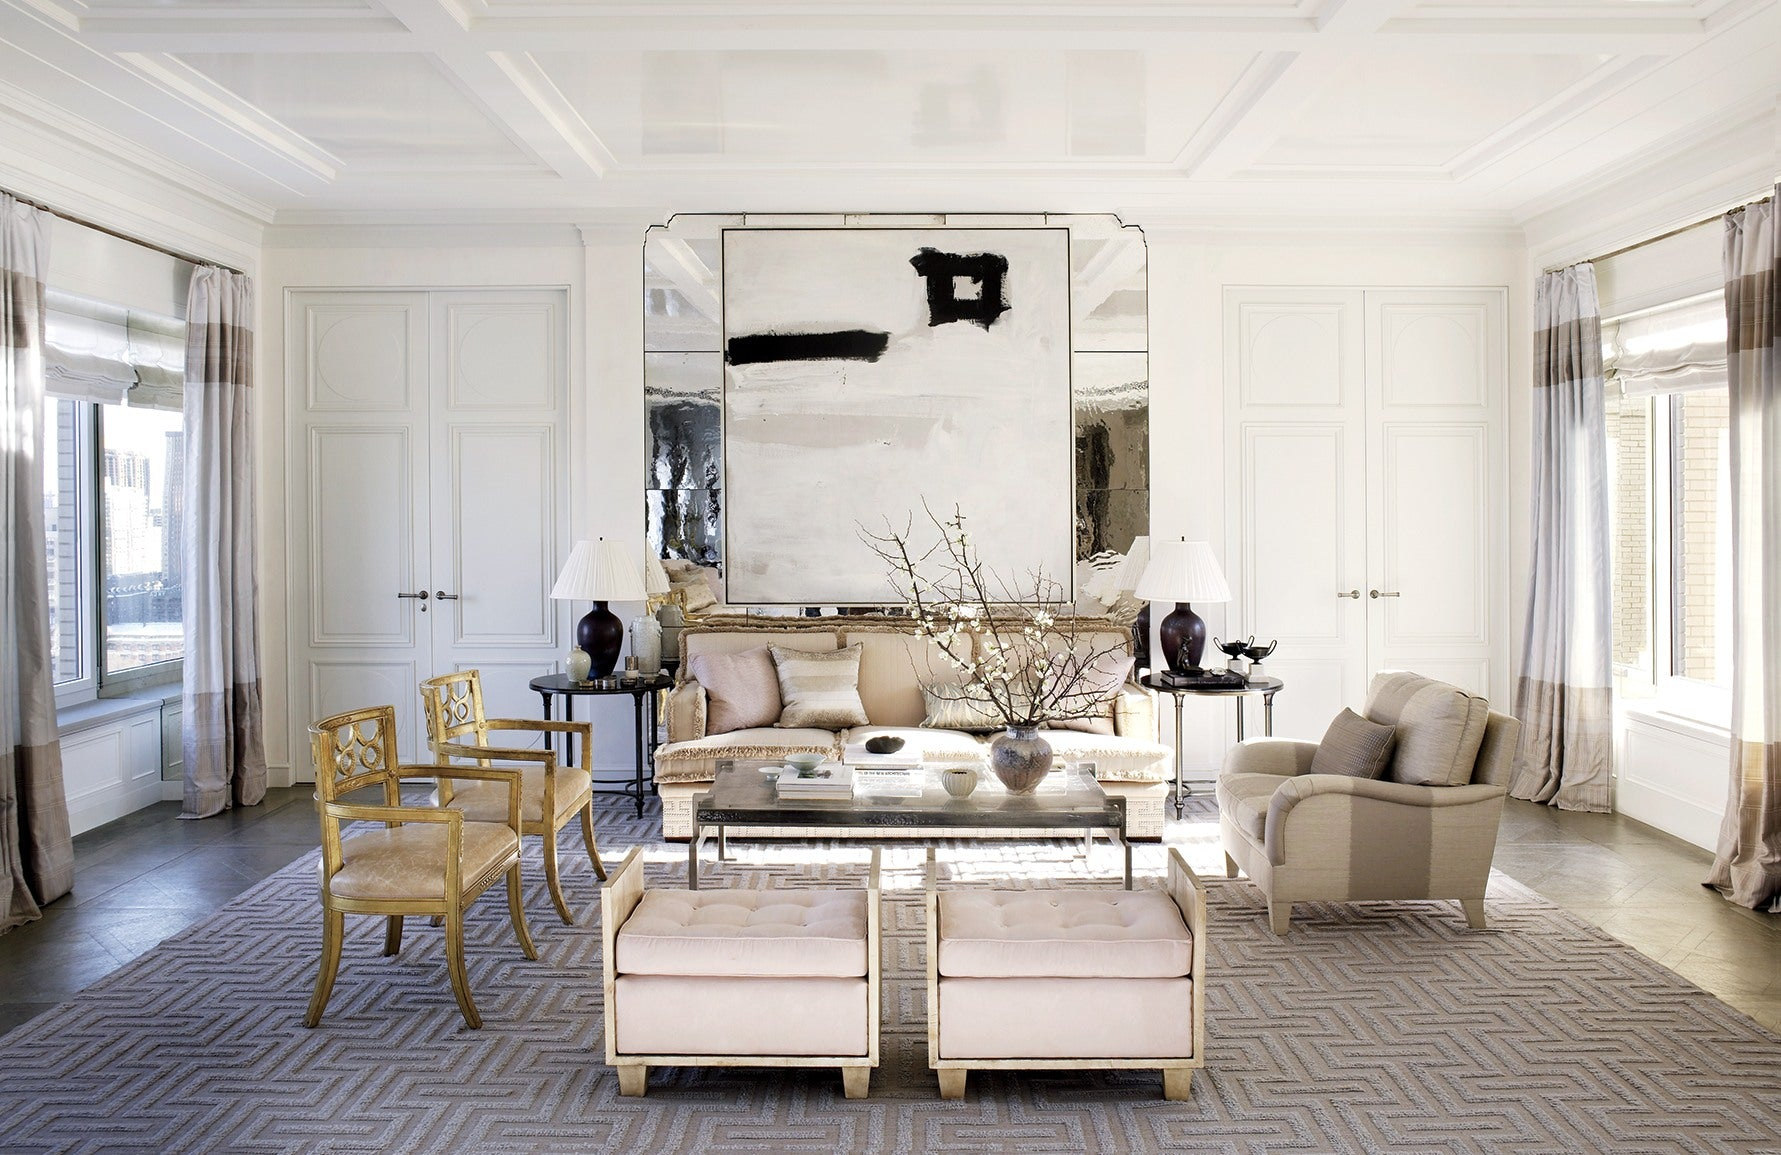 Top 10 American Interior Designers You Need To Know - Michael S. Smith - LuxDeco Style Guide